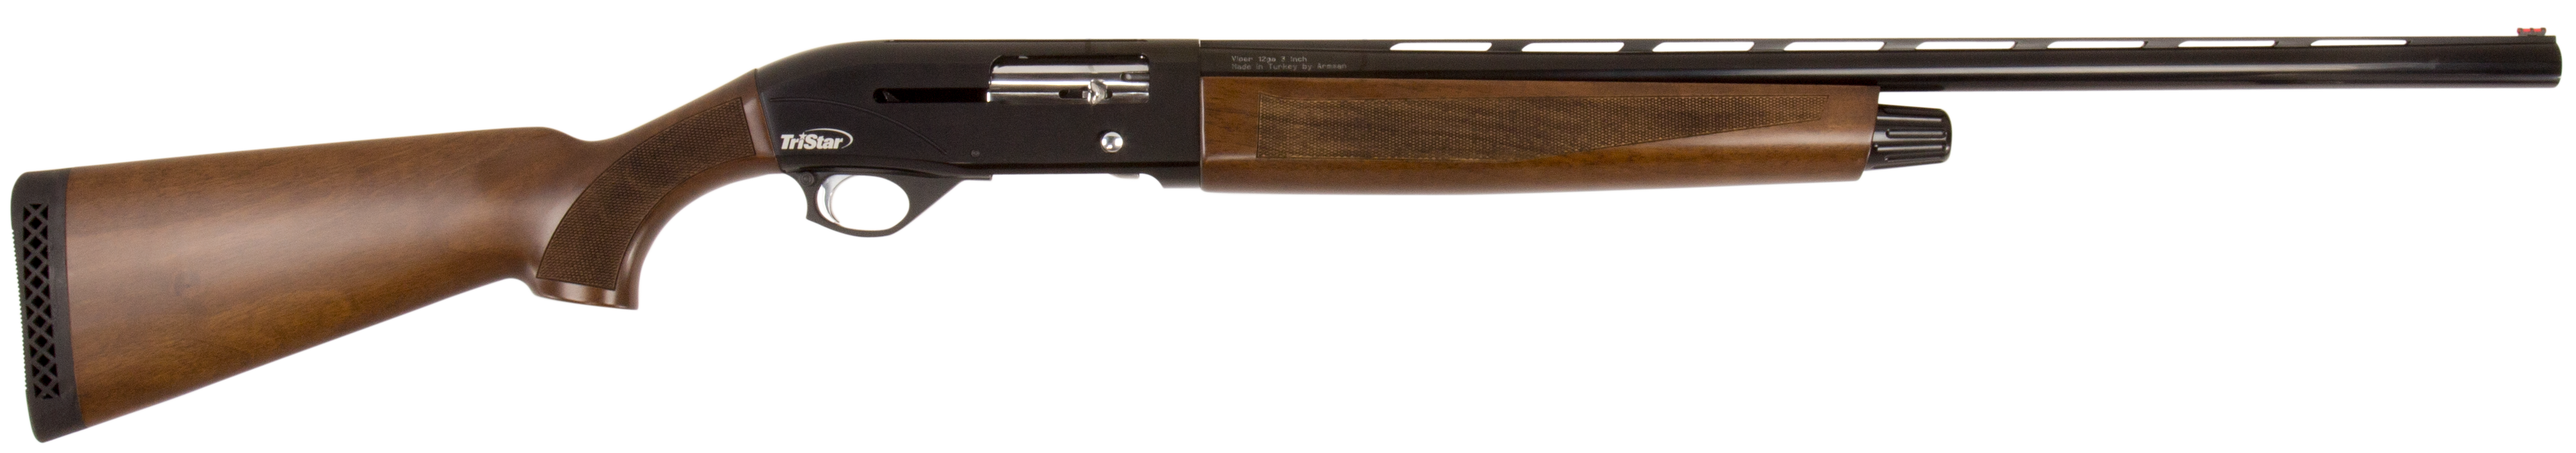 TriStar Viper G2 Wood Semi-Auto Shotgun 3'' 12 Gauge 26'' Black - Turkish Walnut